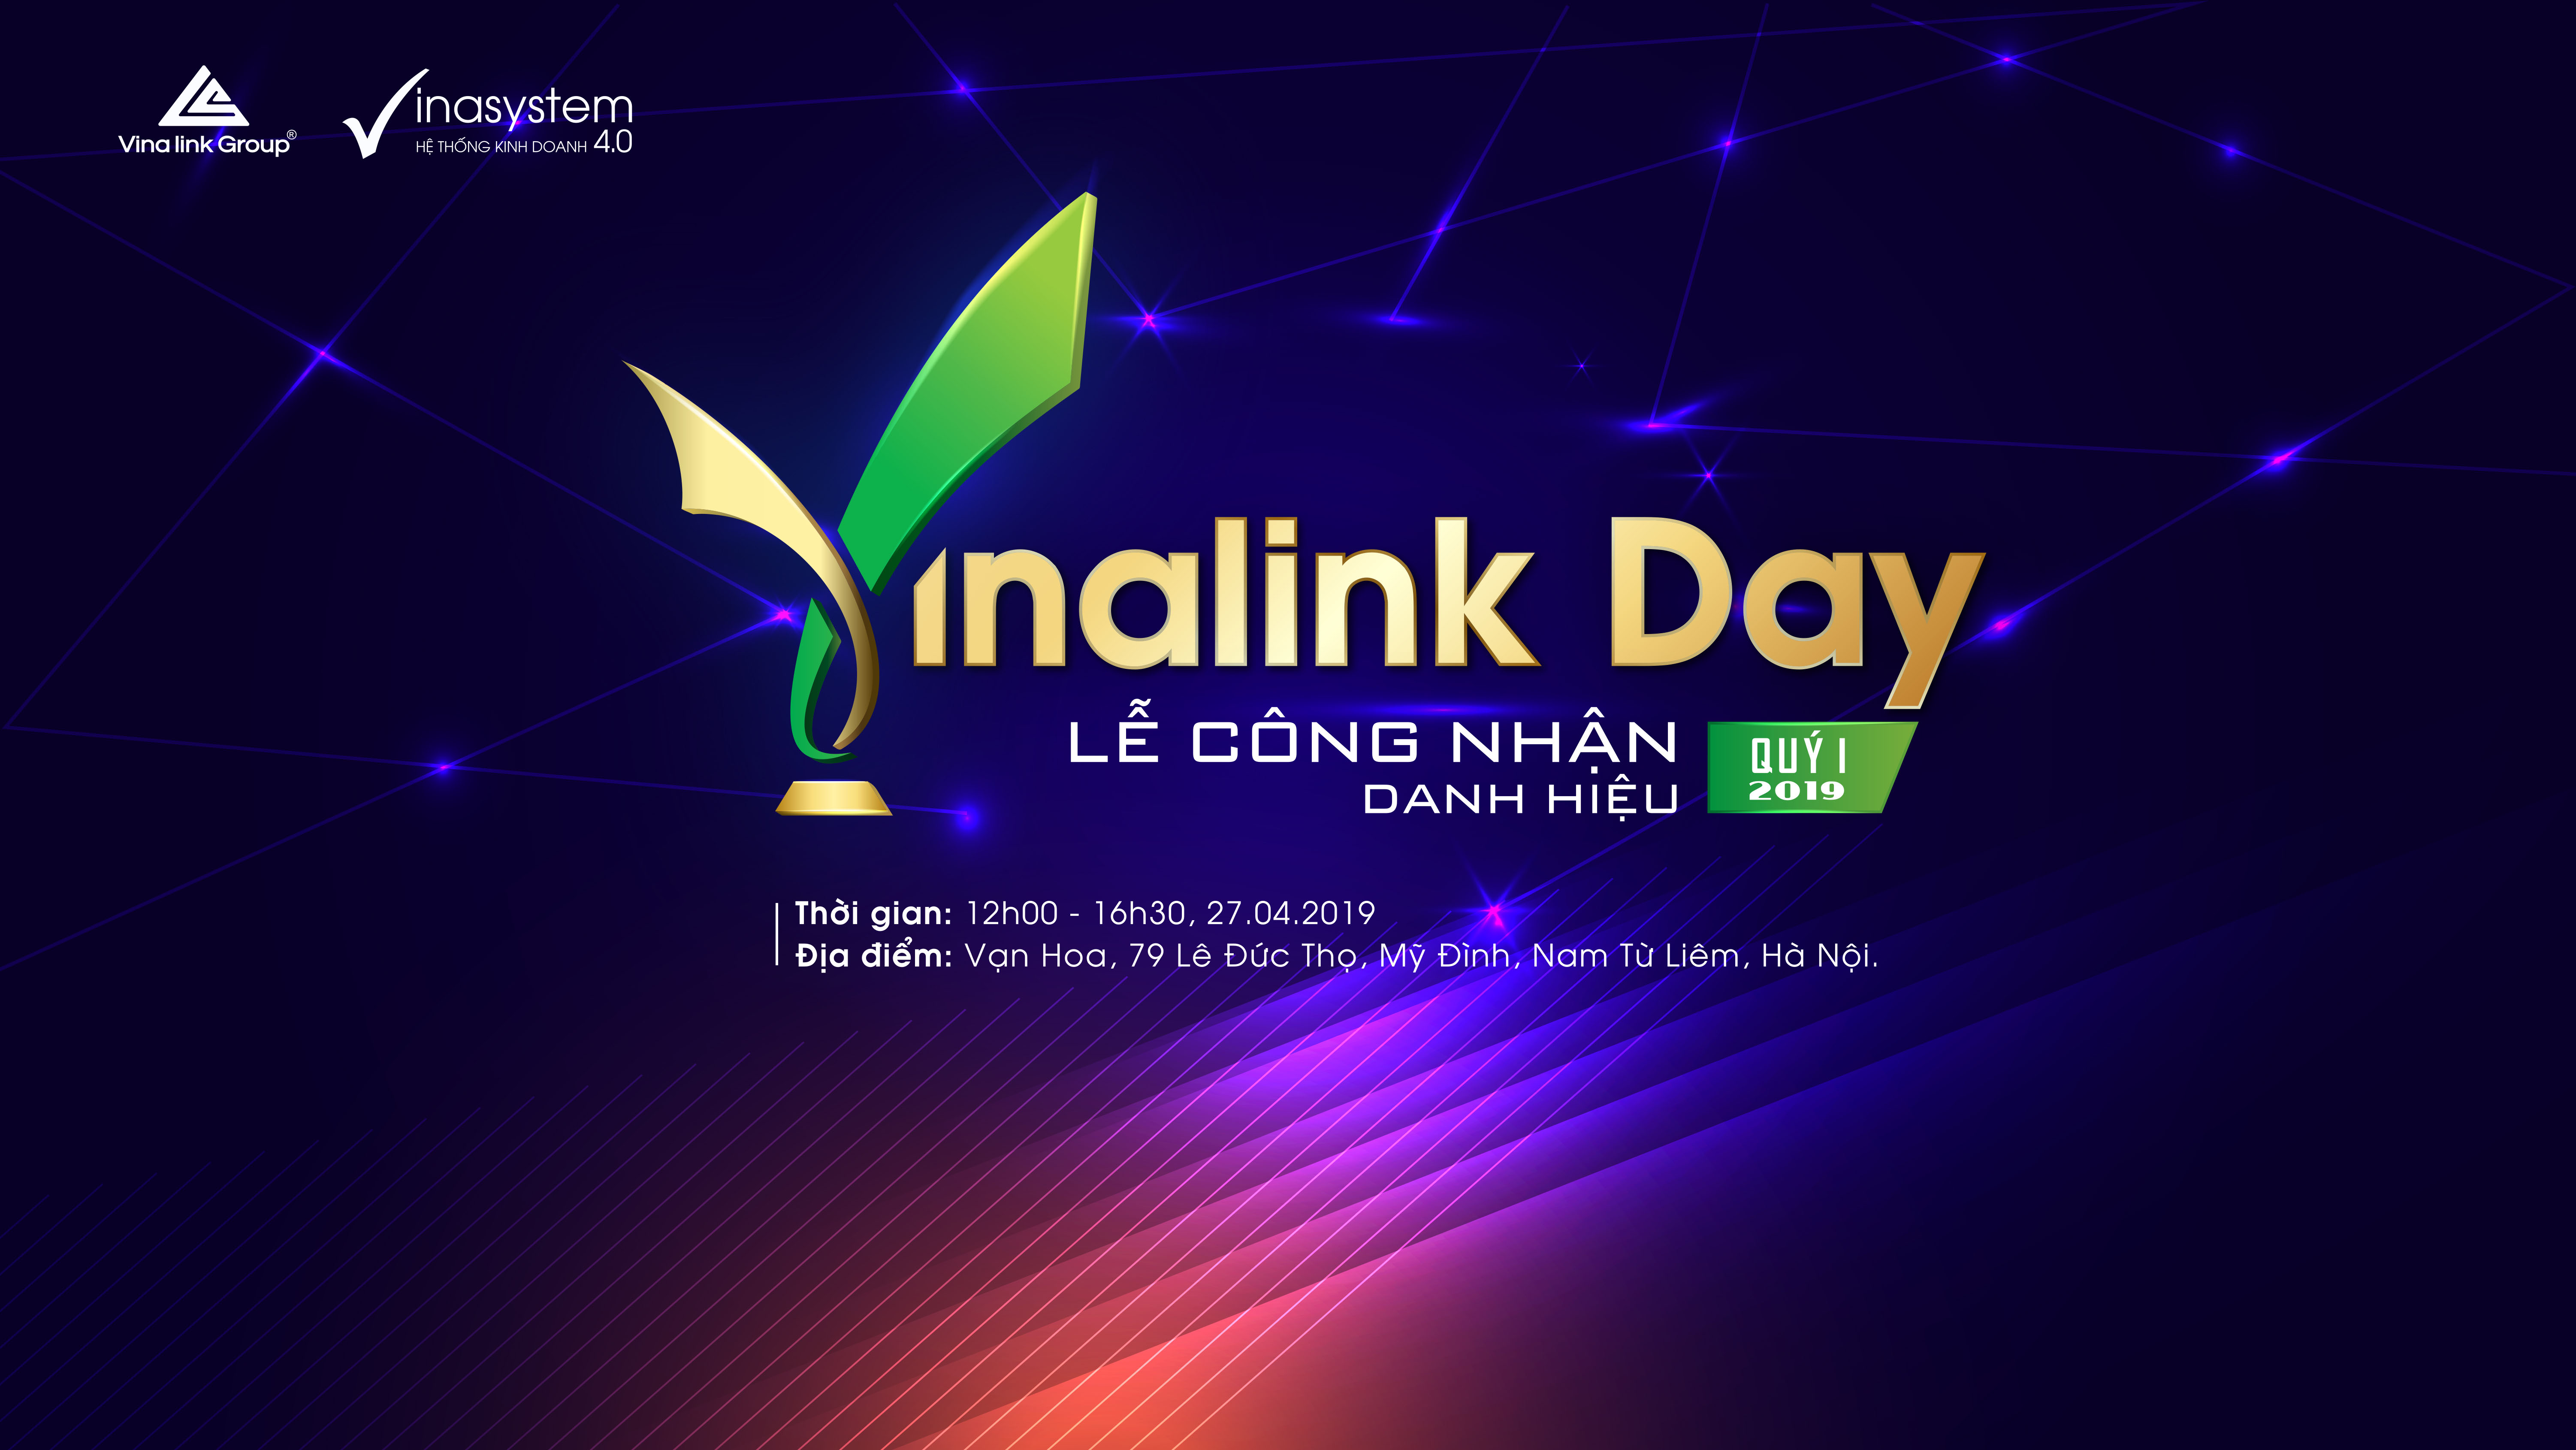 VINALINK DAY MIỀN BẮC VINALINK GROUP